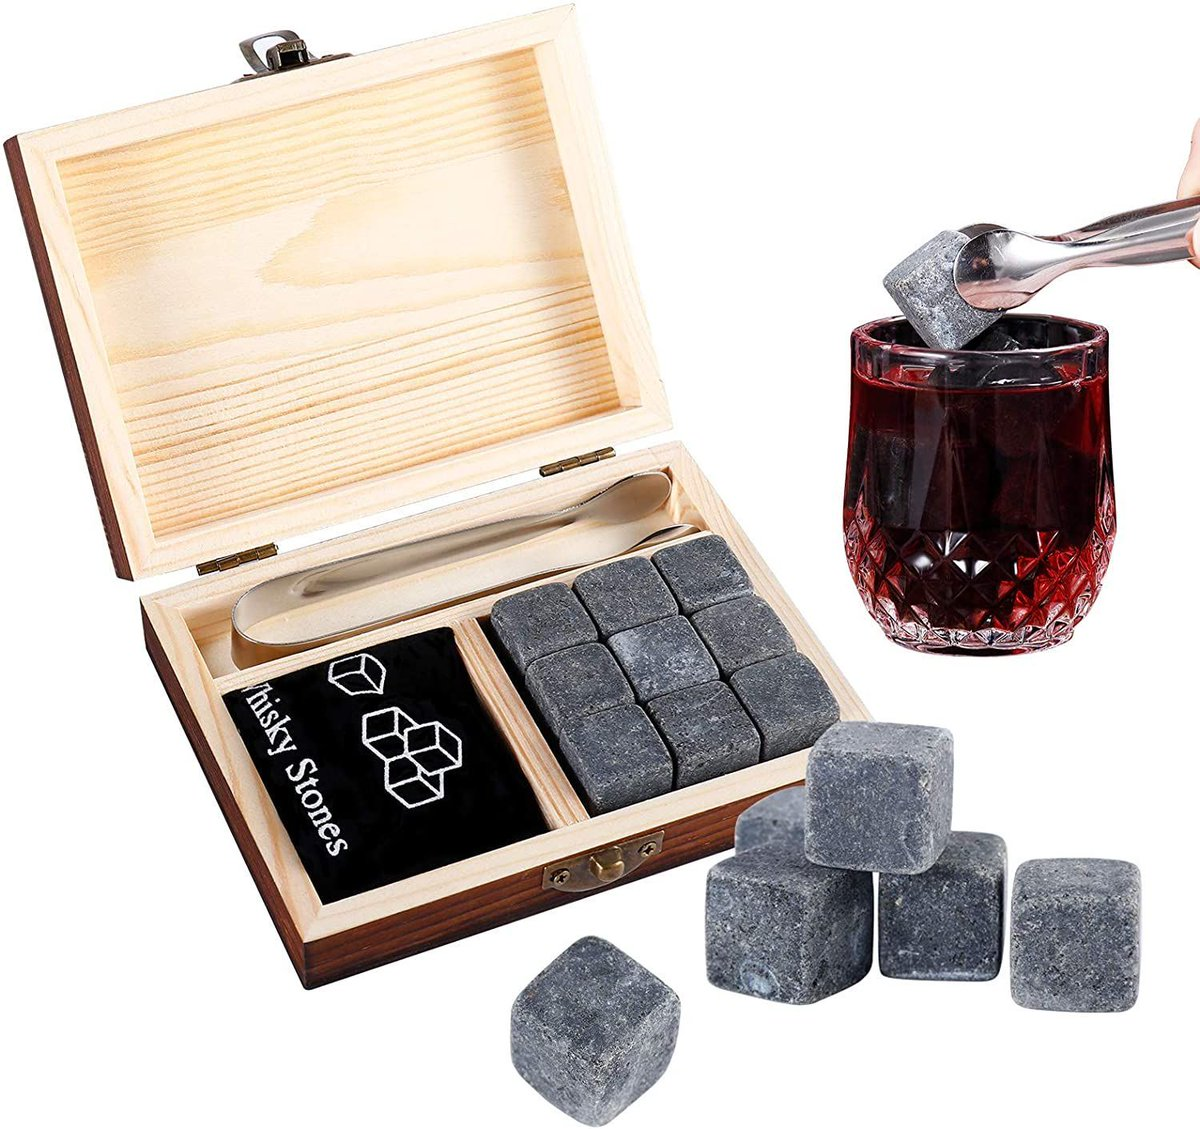 ad: ONLY $9.49  Whiskey Stones Set   use code RINQR2U8 at checkout